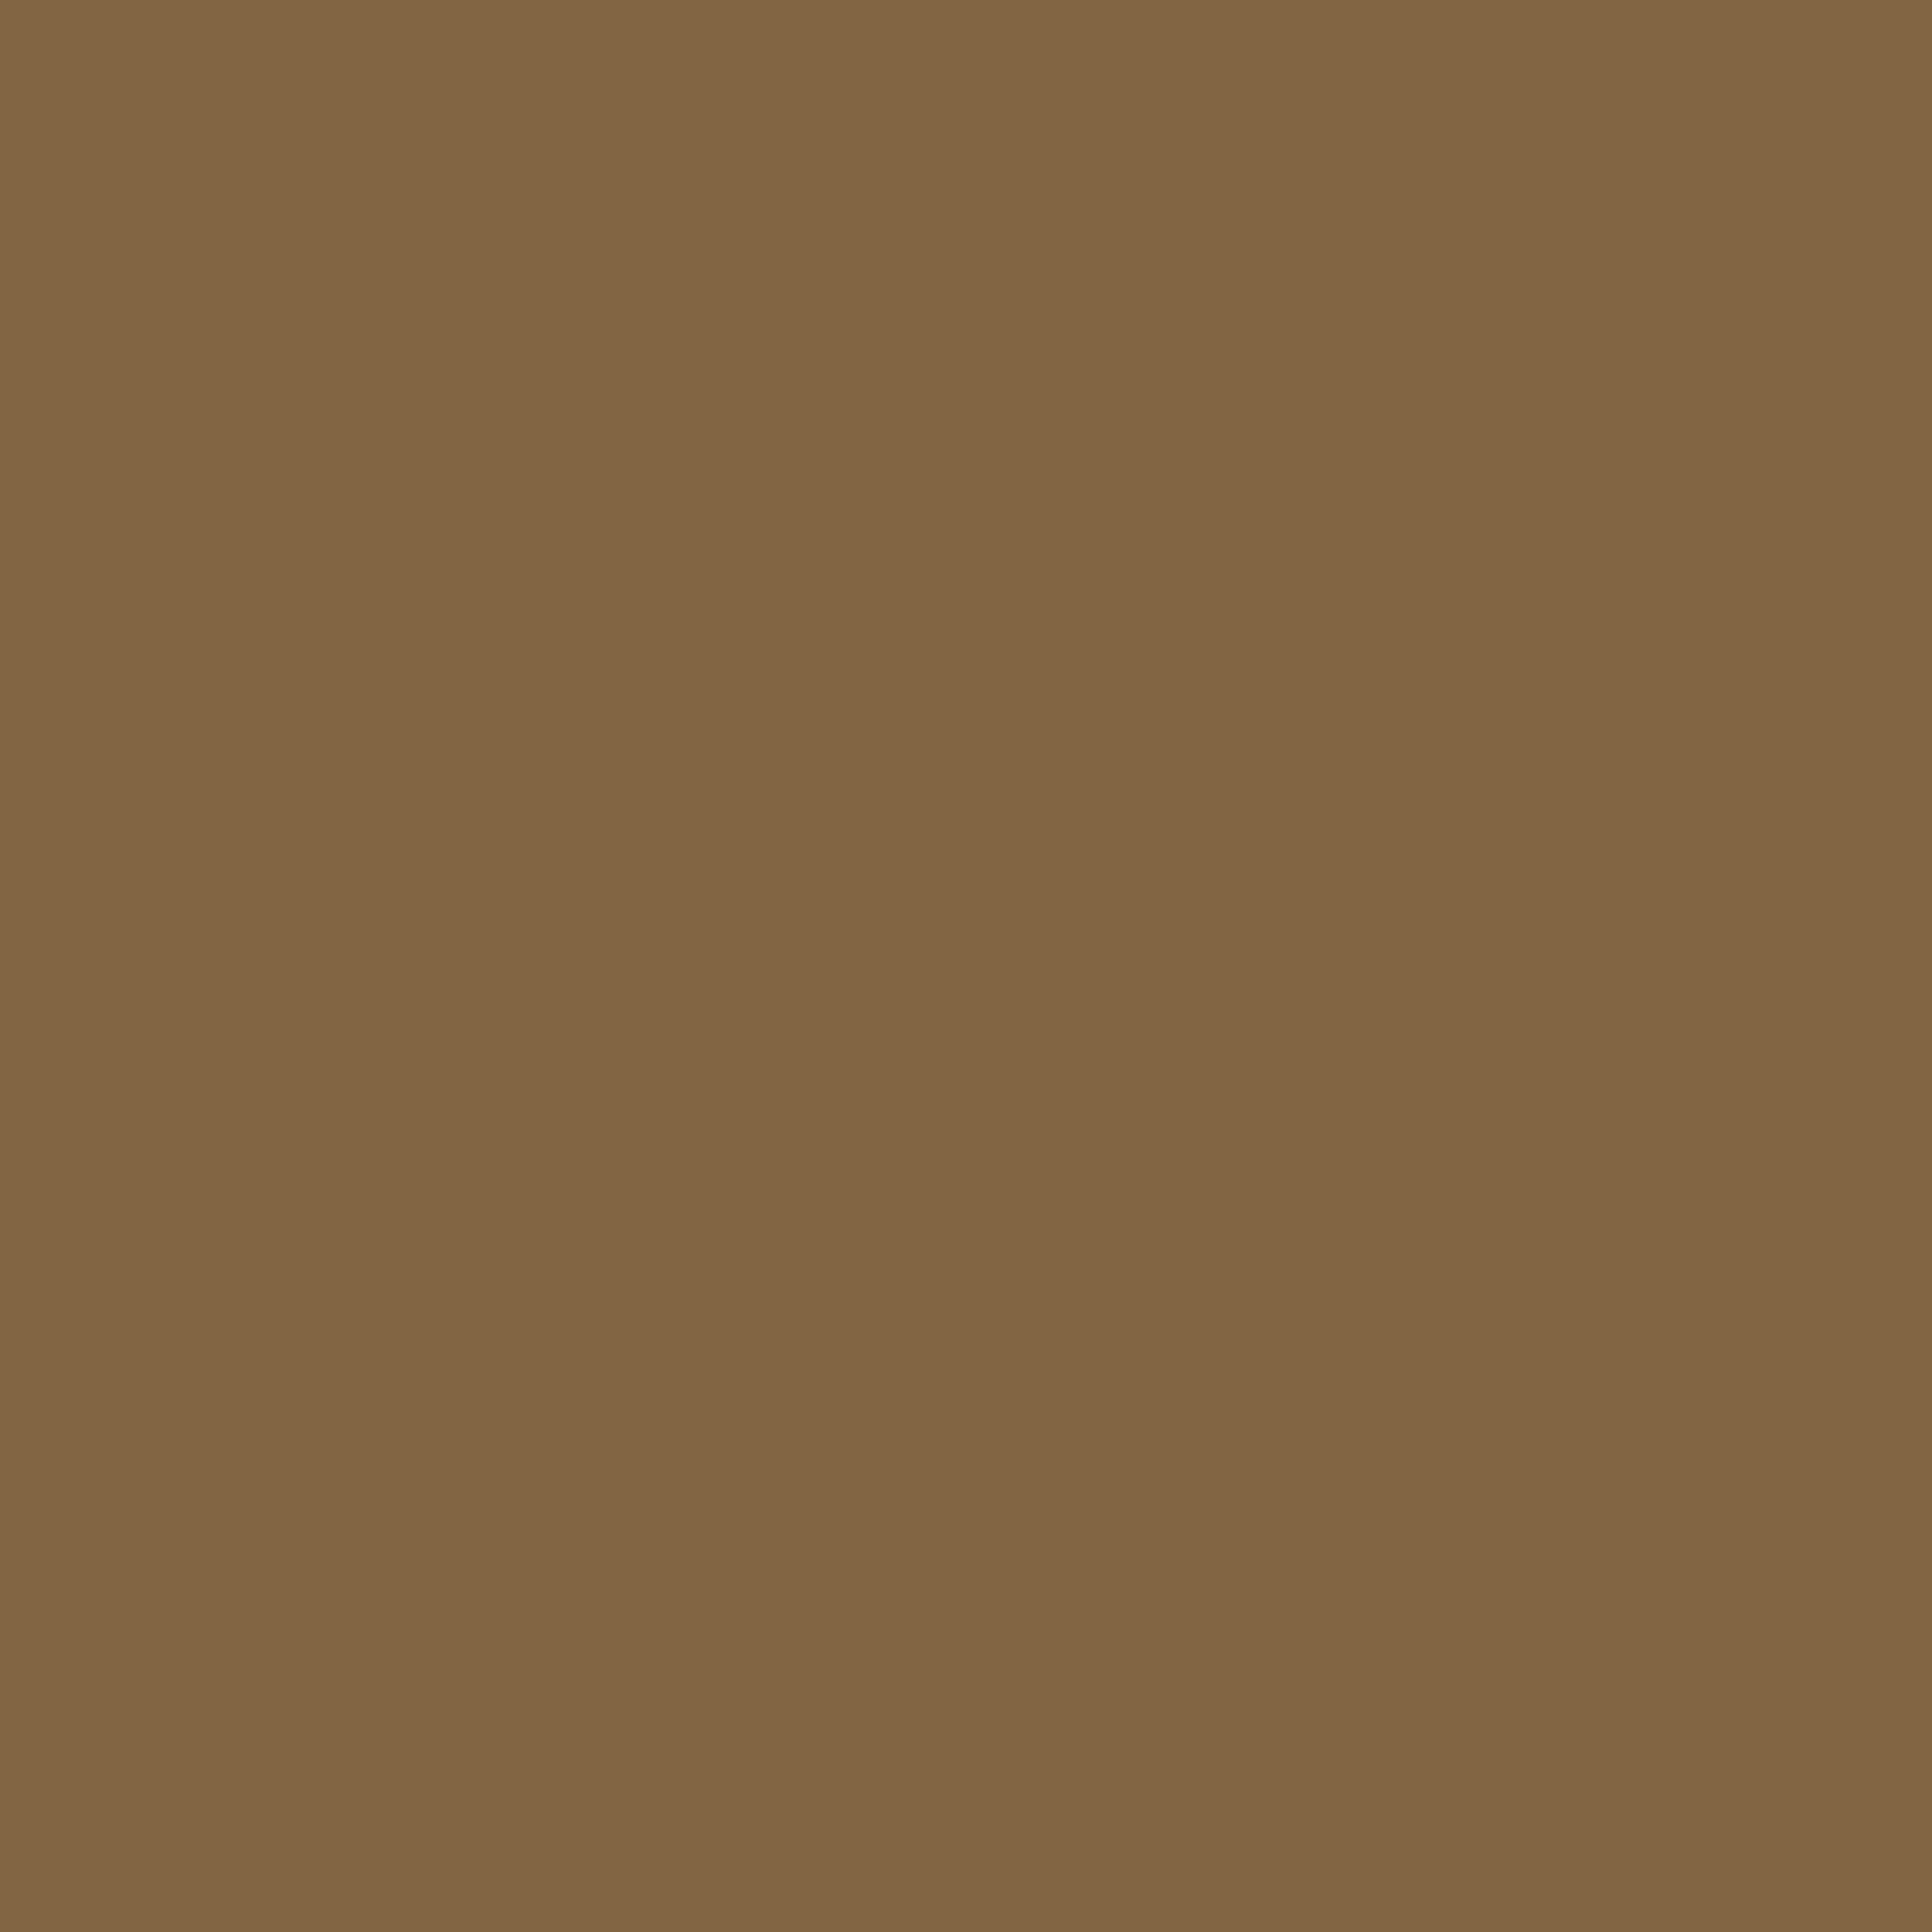 2732x2732 Raw Umber Solid Color Background